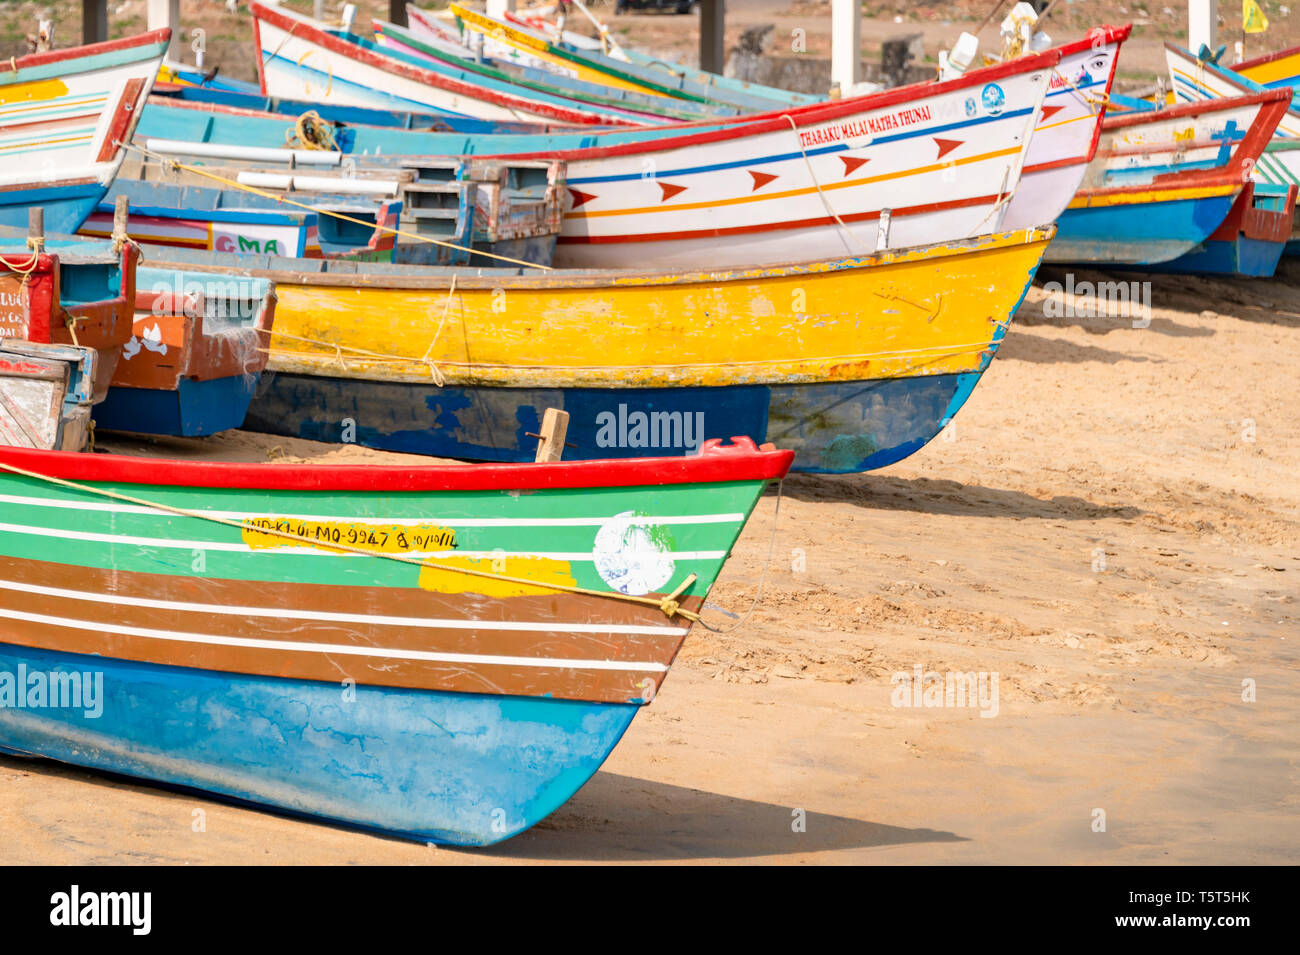 Horizontal view of colourful fishing boats at Vizhinjam in Kerala, India. - Stock Image